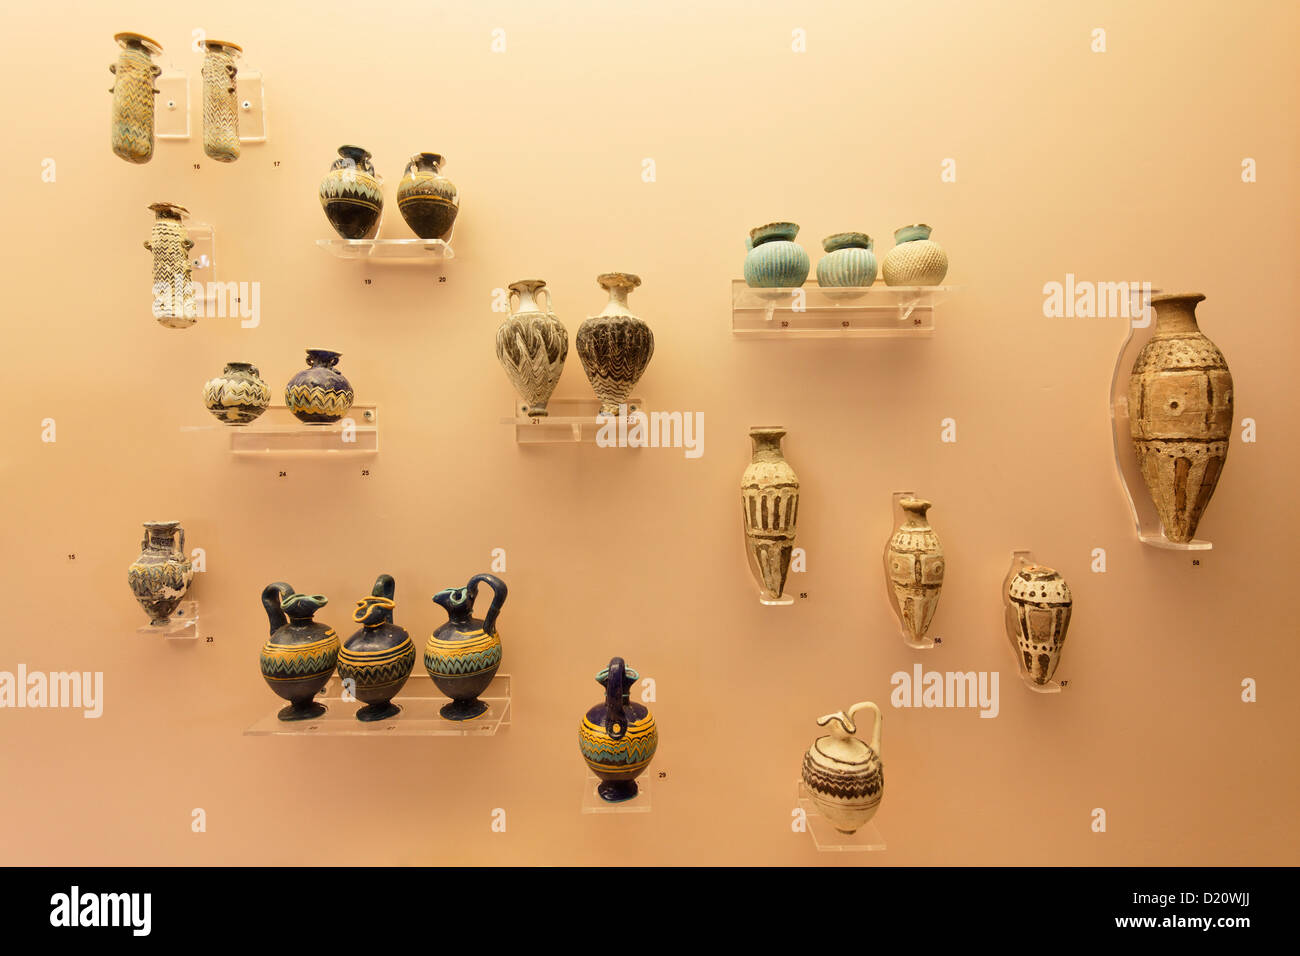 Display of old vases and amphores, archeological museum, Rhodes town, Rhodes, Dodecanese Islands, Greece, Europe - Stock Image